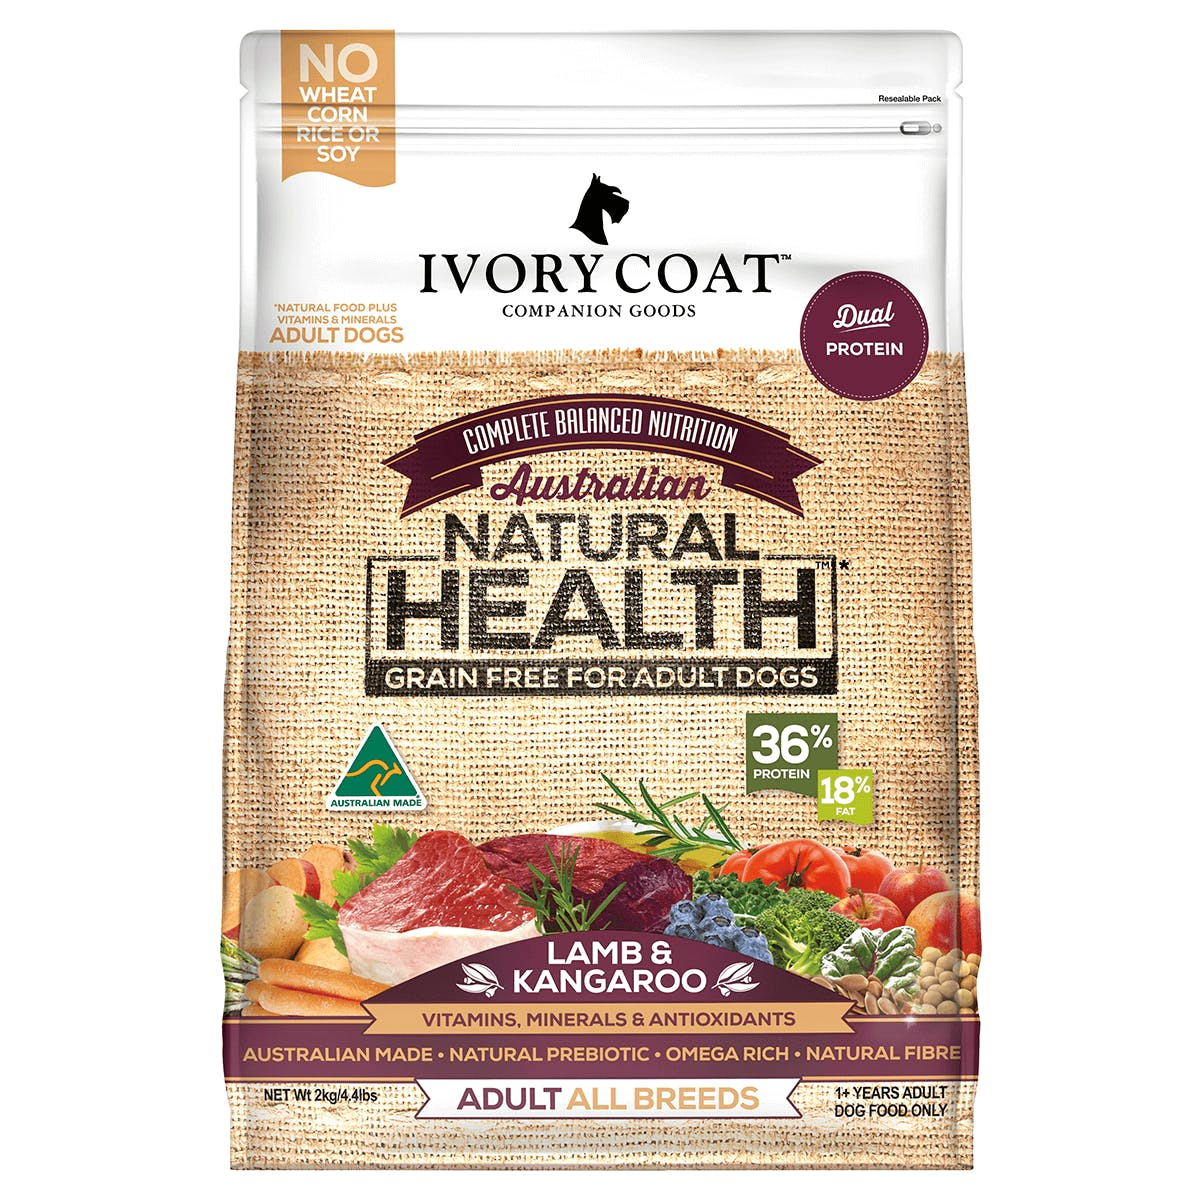 Ivory Coat | Dry GF Lamb & Kangaroo 2kg | Grain Free Dry Dog Food | Front of pack